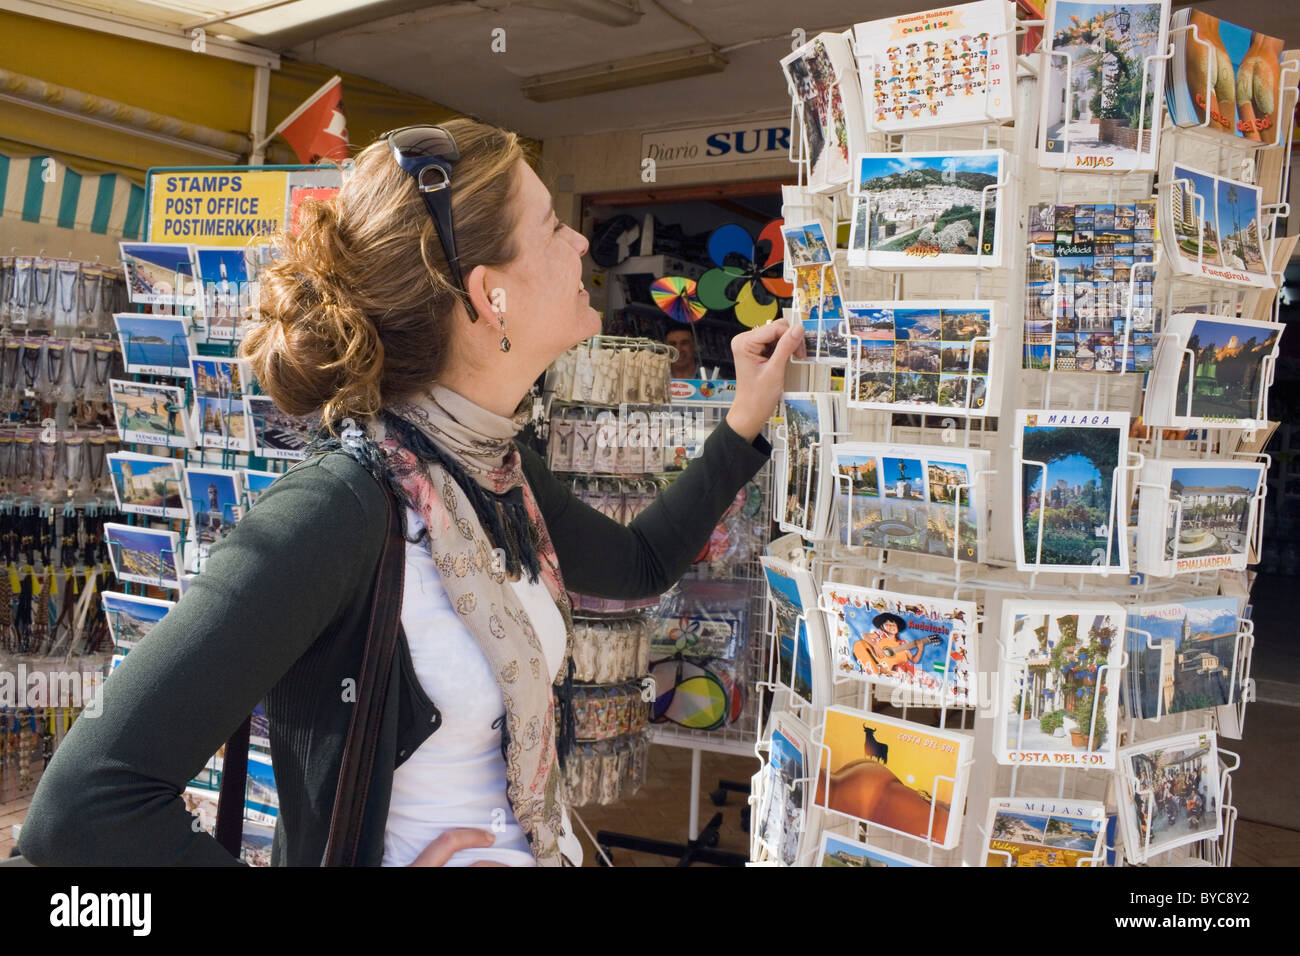 Young woman choosing holiday postcards outside souvenir shop in Los Boliches, Fuengirola, Costa del Sol, Spain. - Stock Image